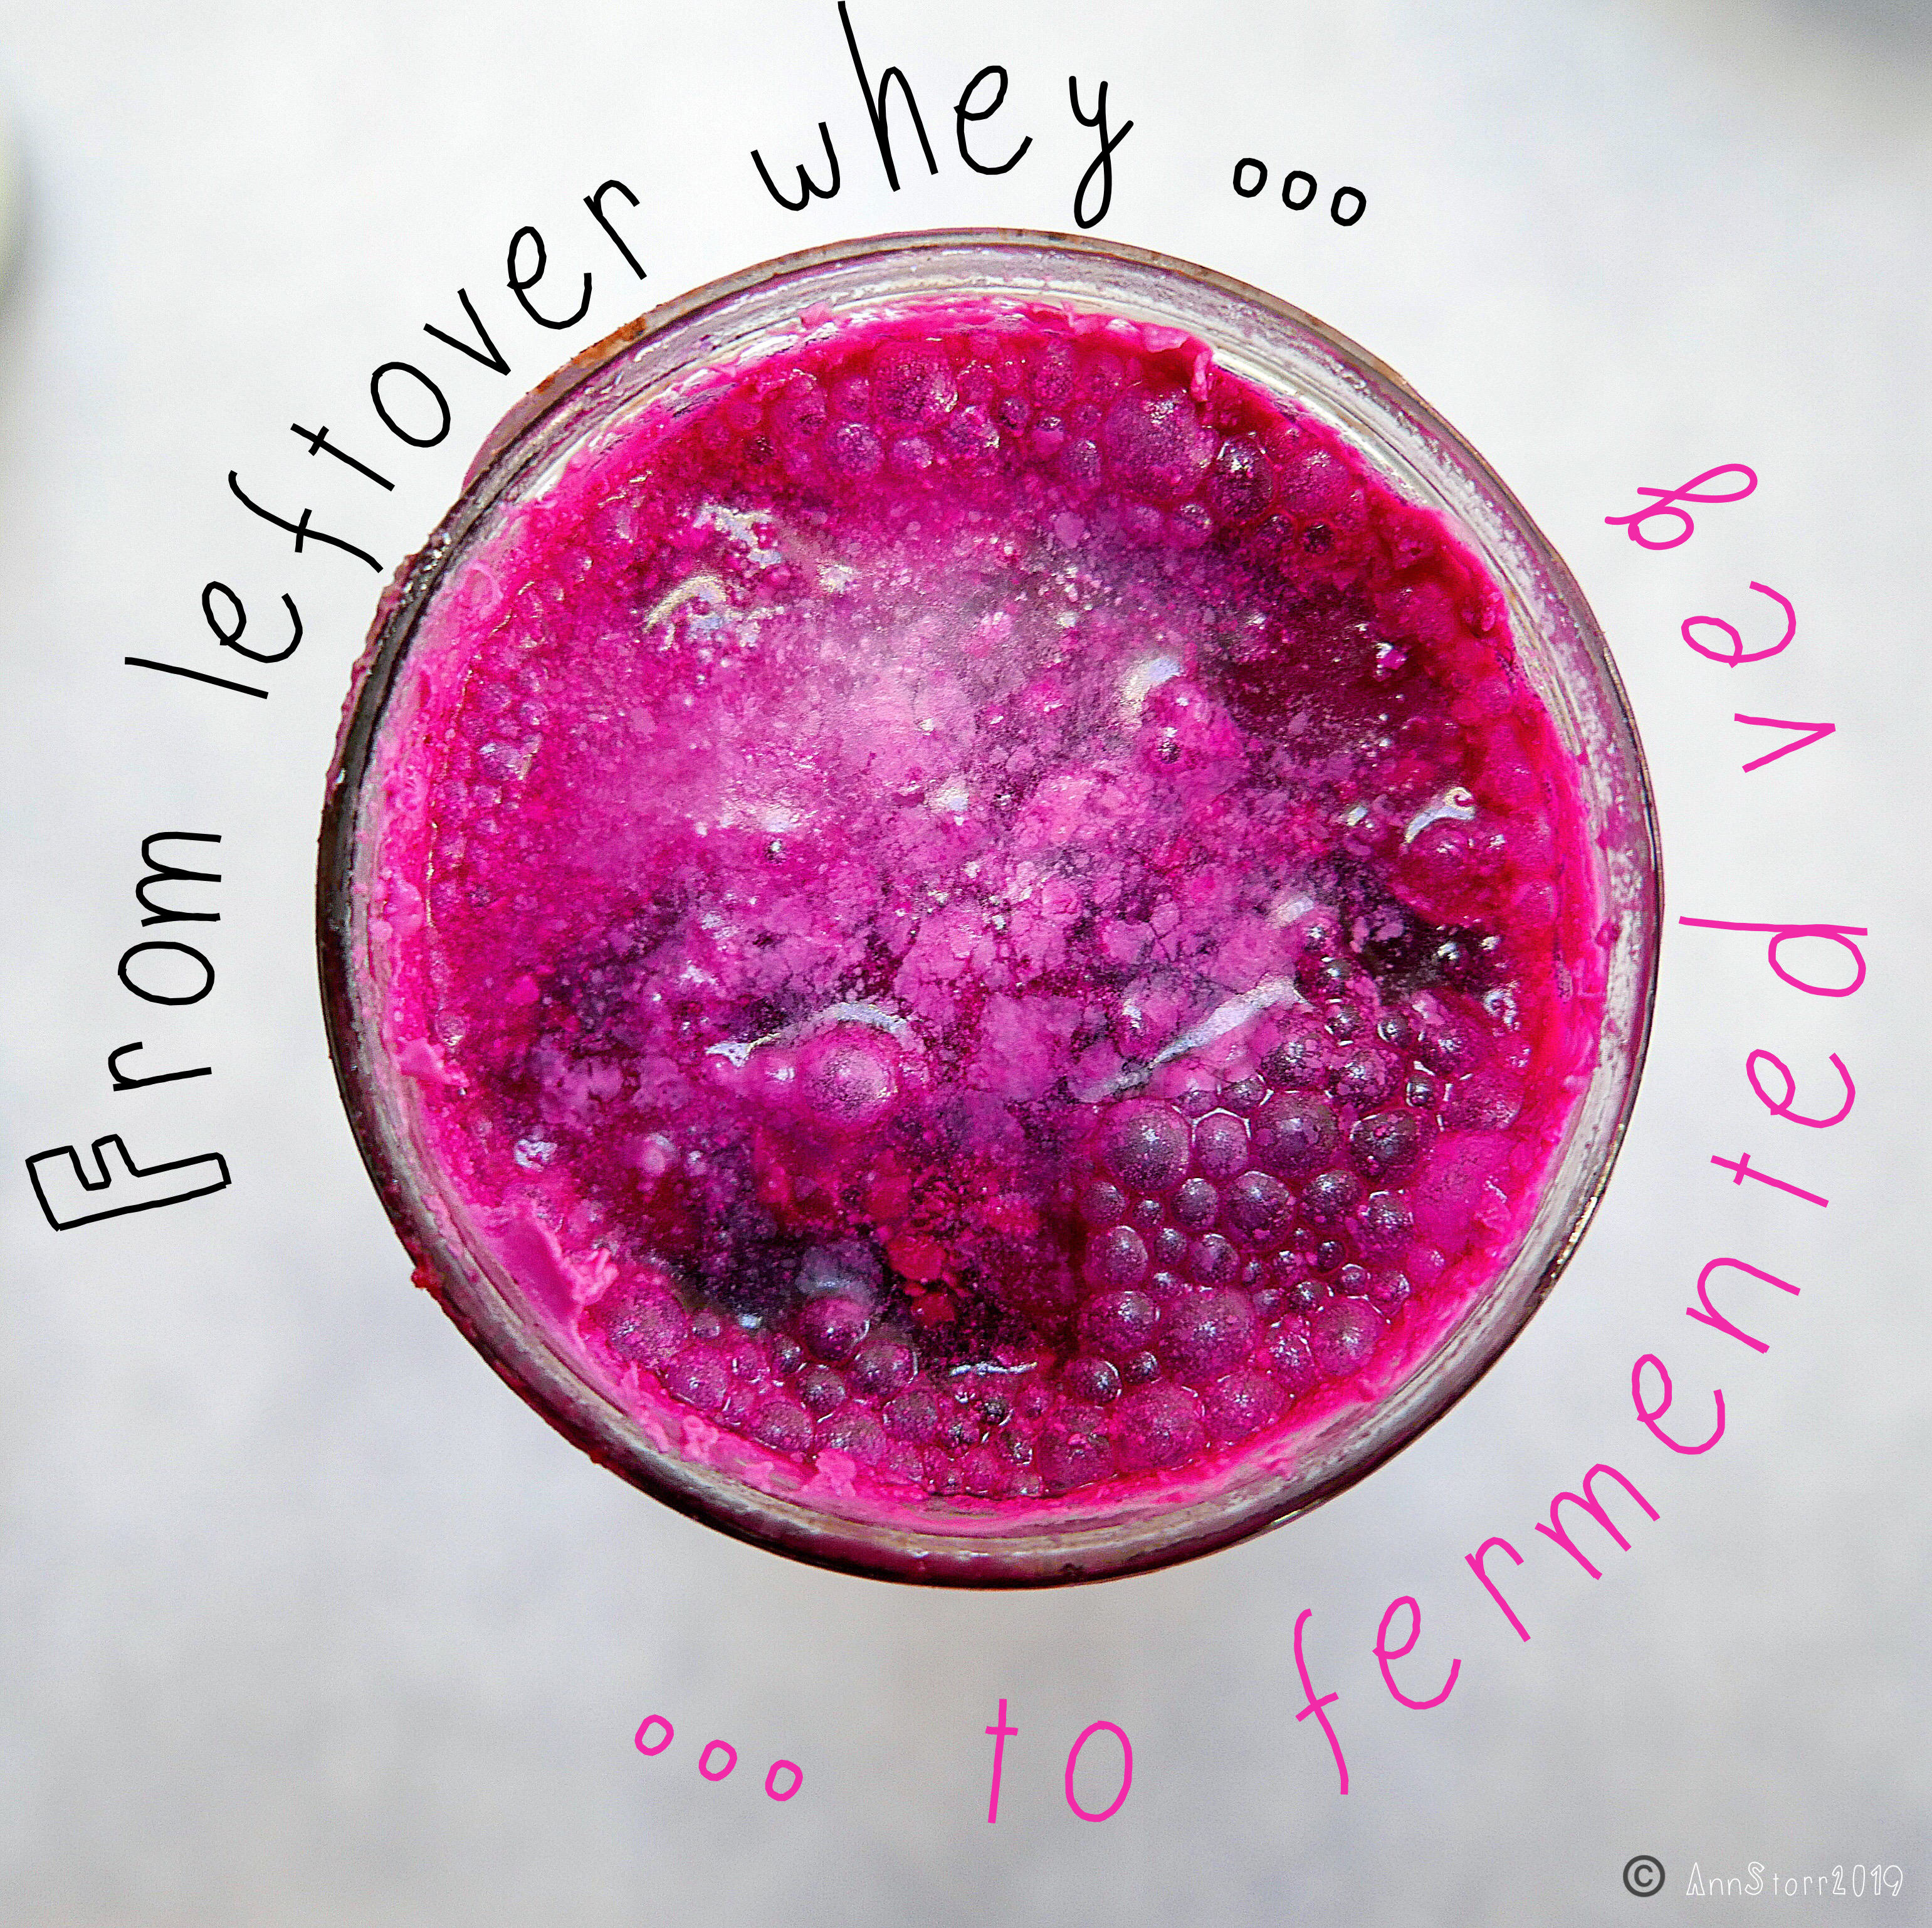 Whey fermented beetroot